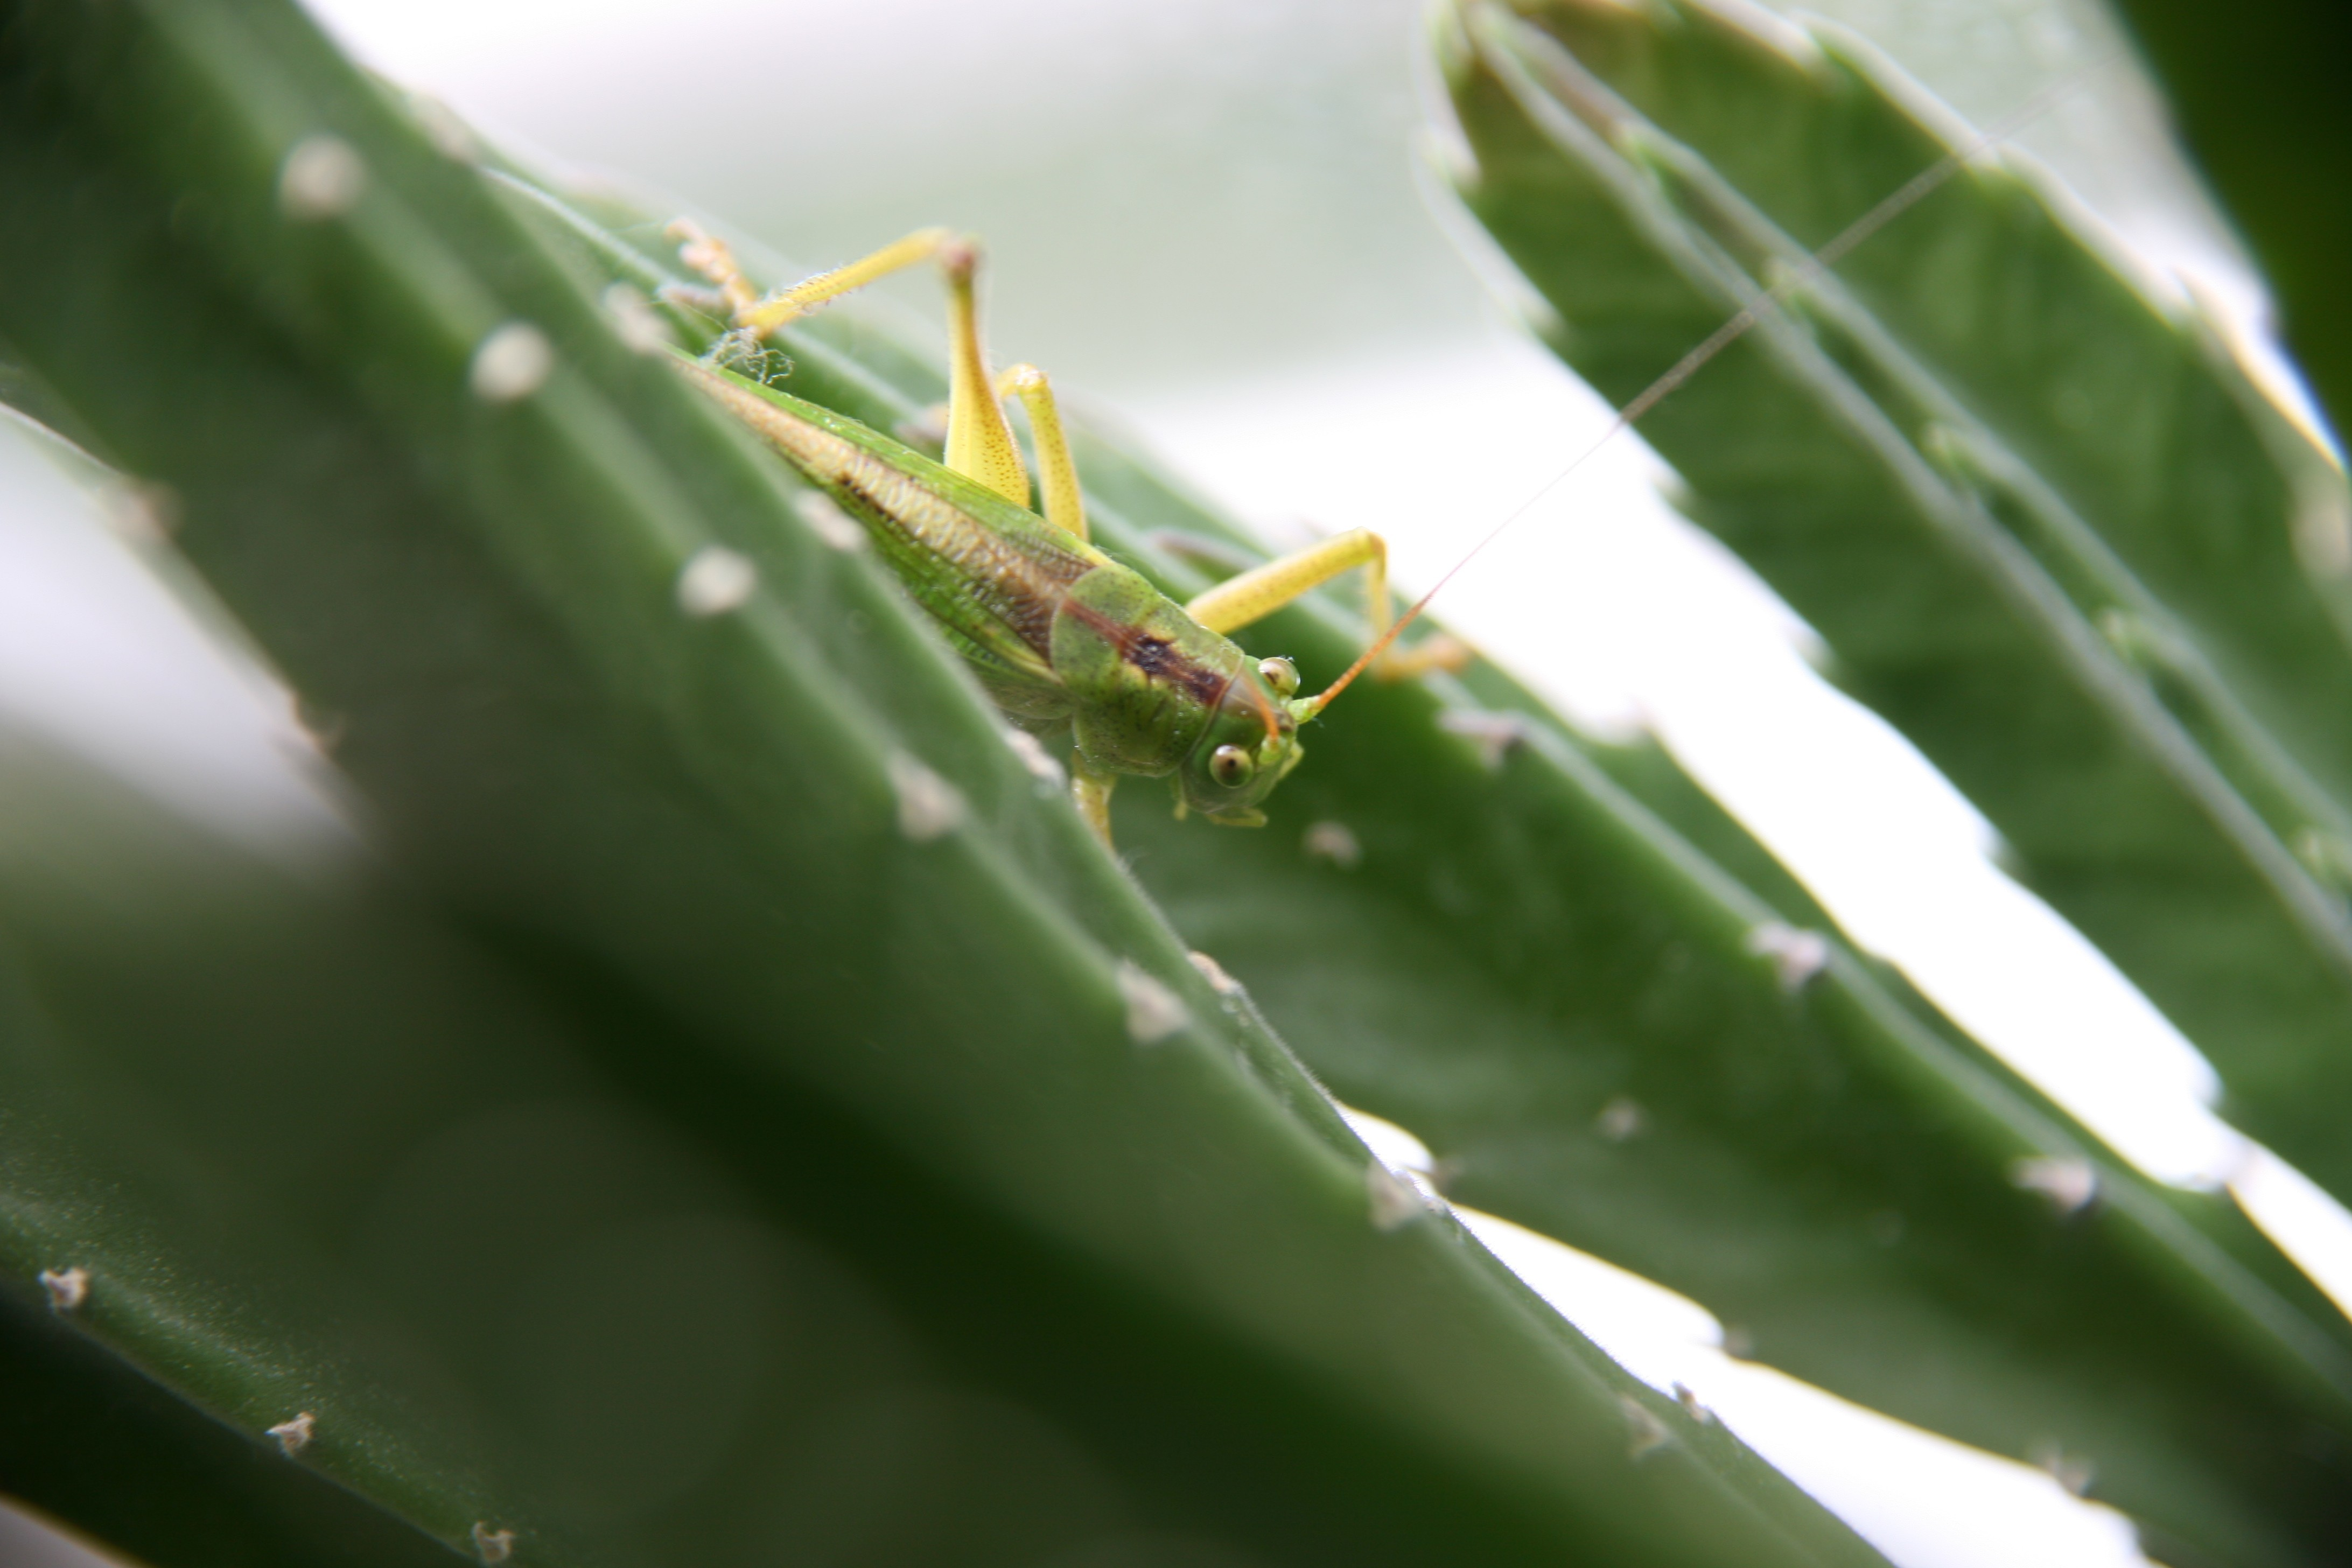 Green insects grasshopper HD Wallpaper